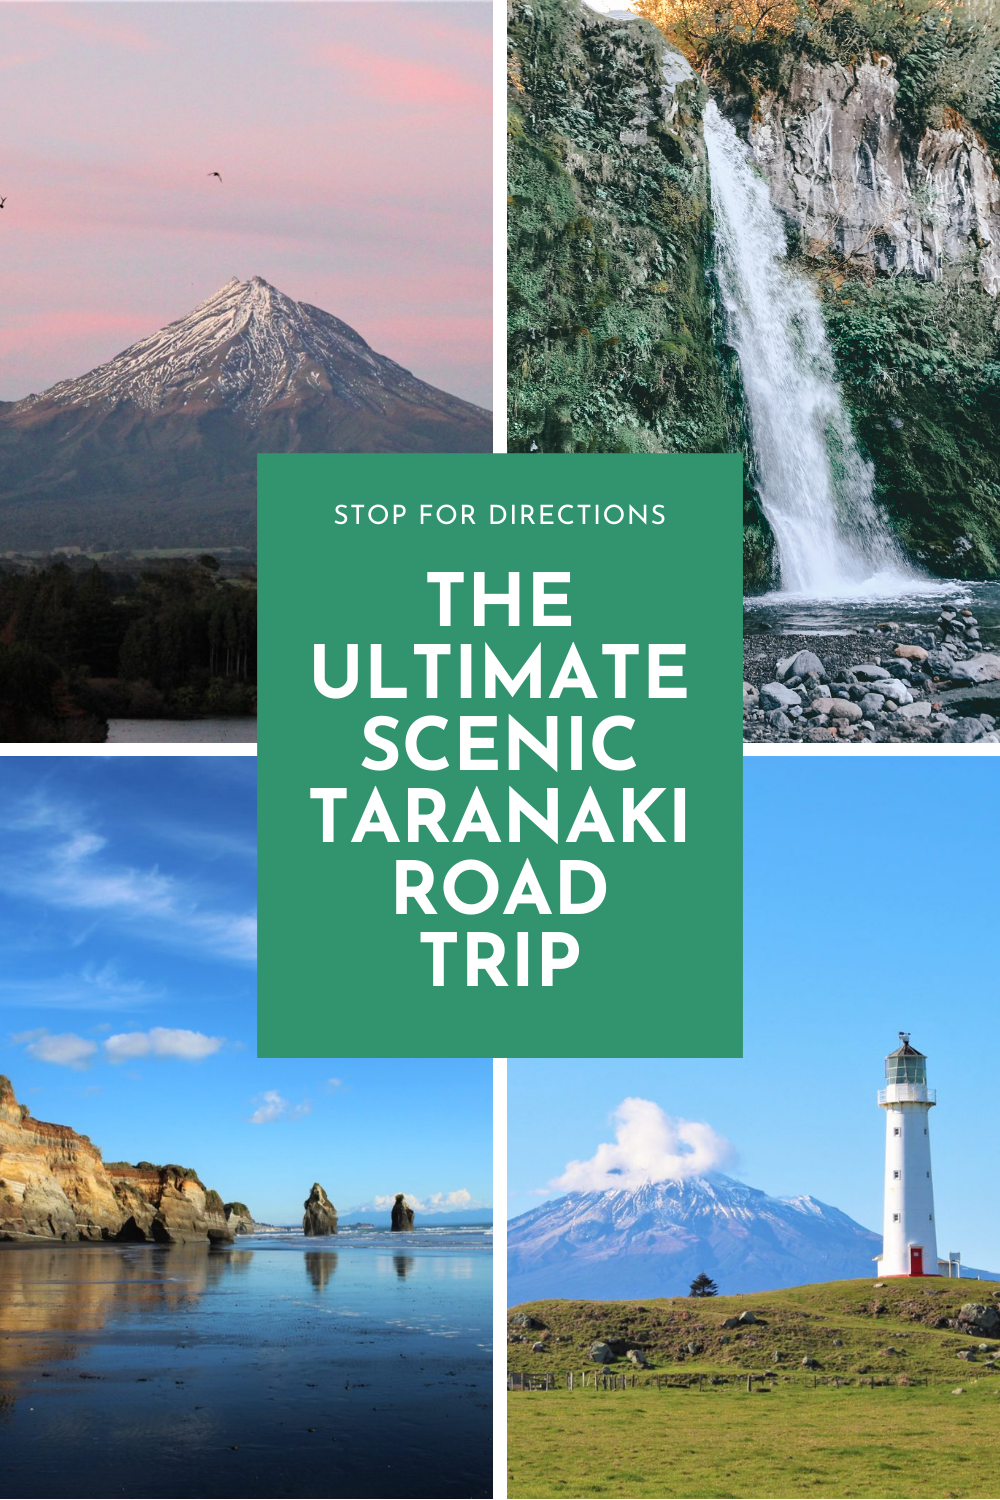 Mt. Taranaki is infamously cloud covered most of the time, so we planned a road trip around finding the best views of the mountain. We discovered some great spots; here's how you can uncover them too… #Taranaki #Mountains #NewZealand #TravelNewZealand #Travel #TravelBlog #TravelBlogger #TravelTips #TravelInspiration #RoadTrip #RoadTripIdea